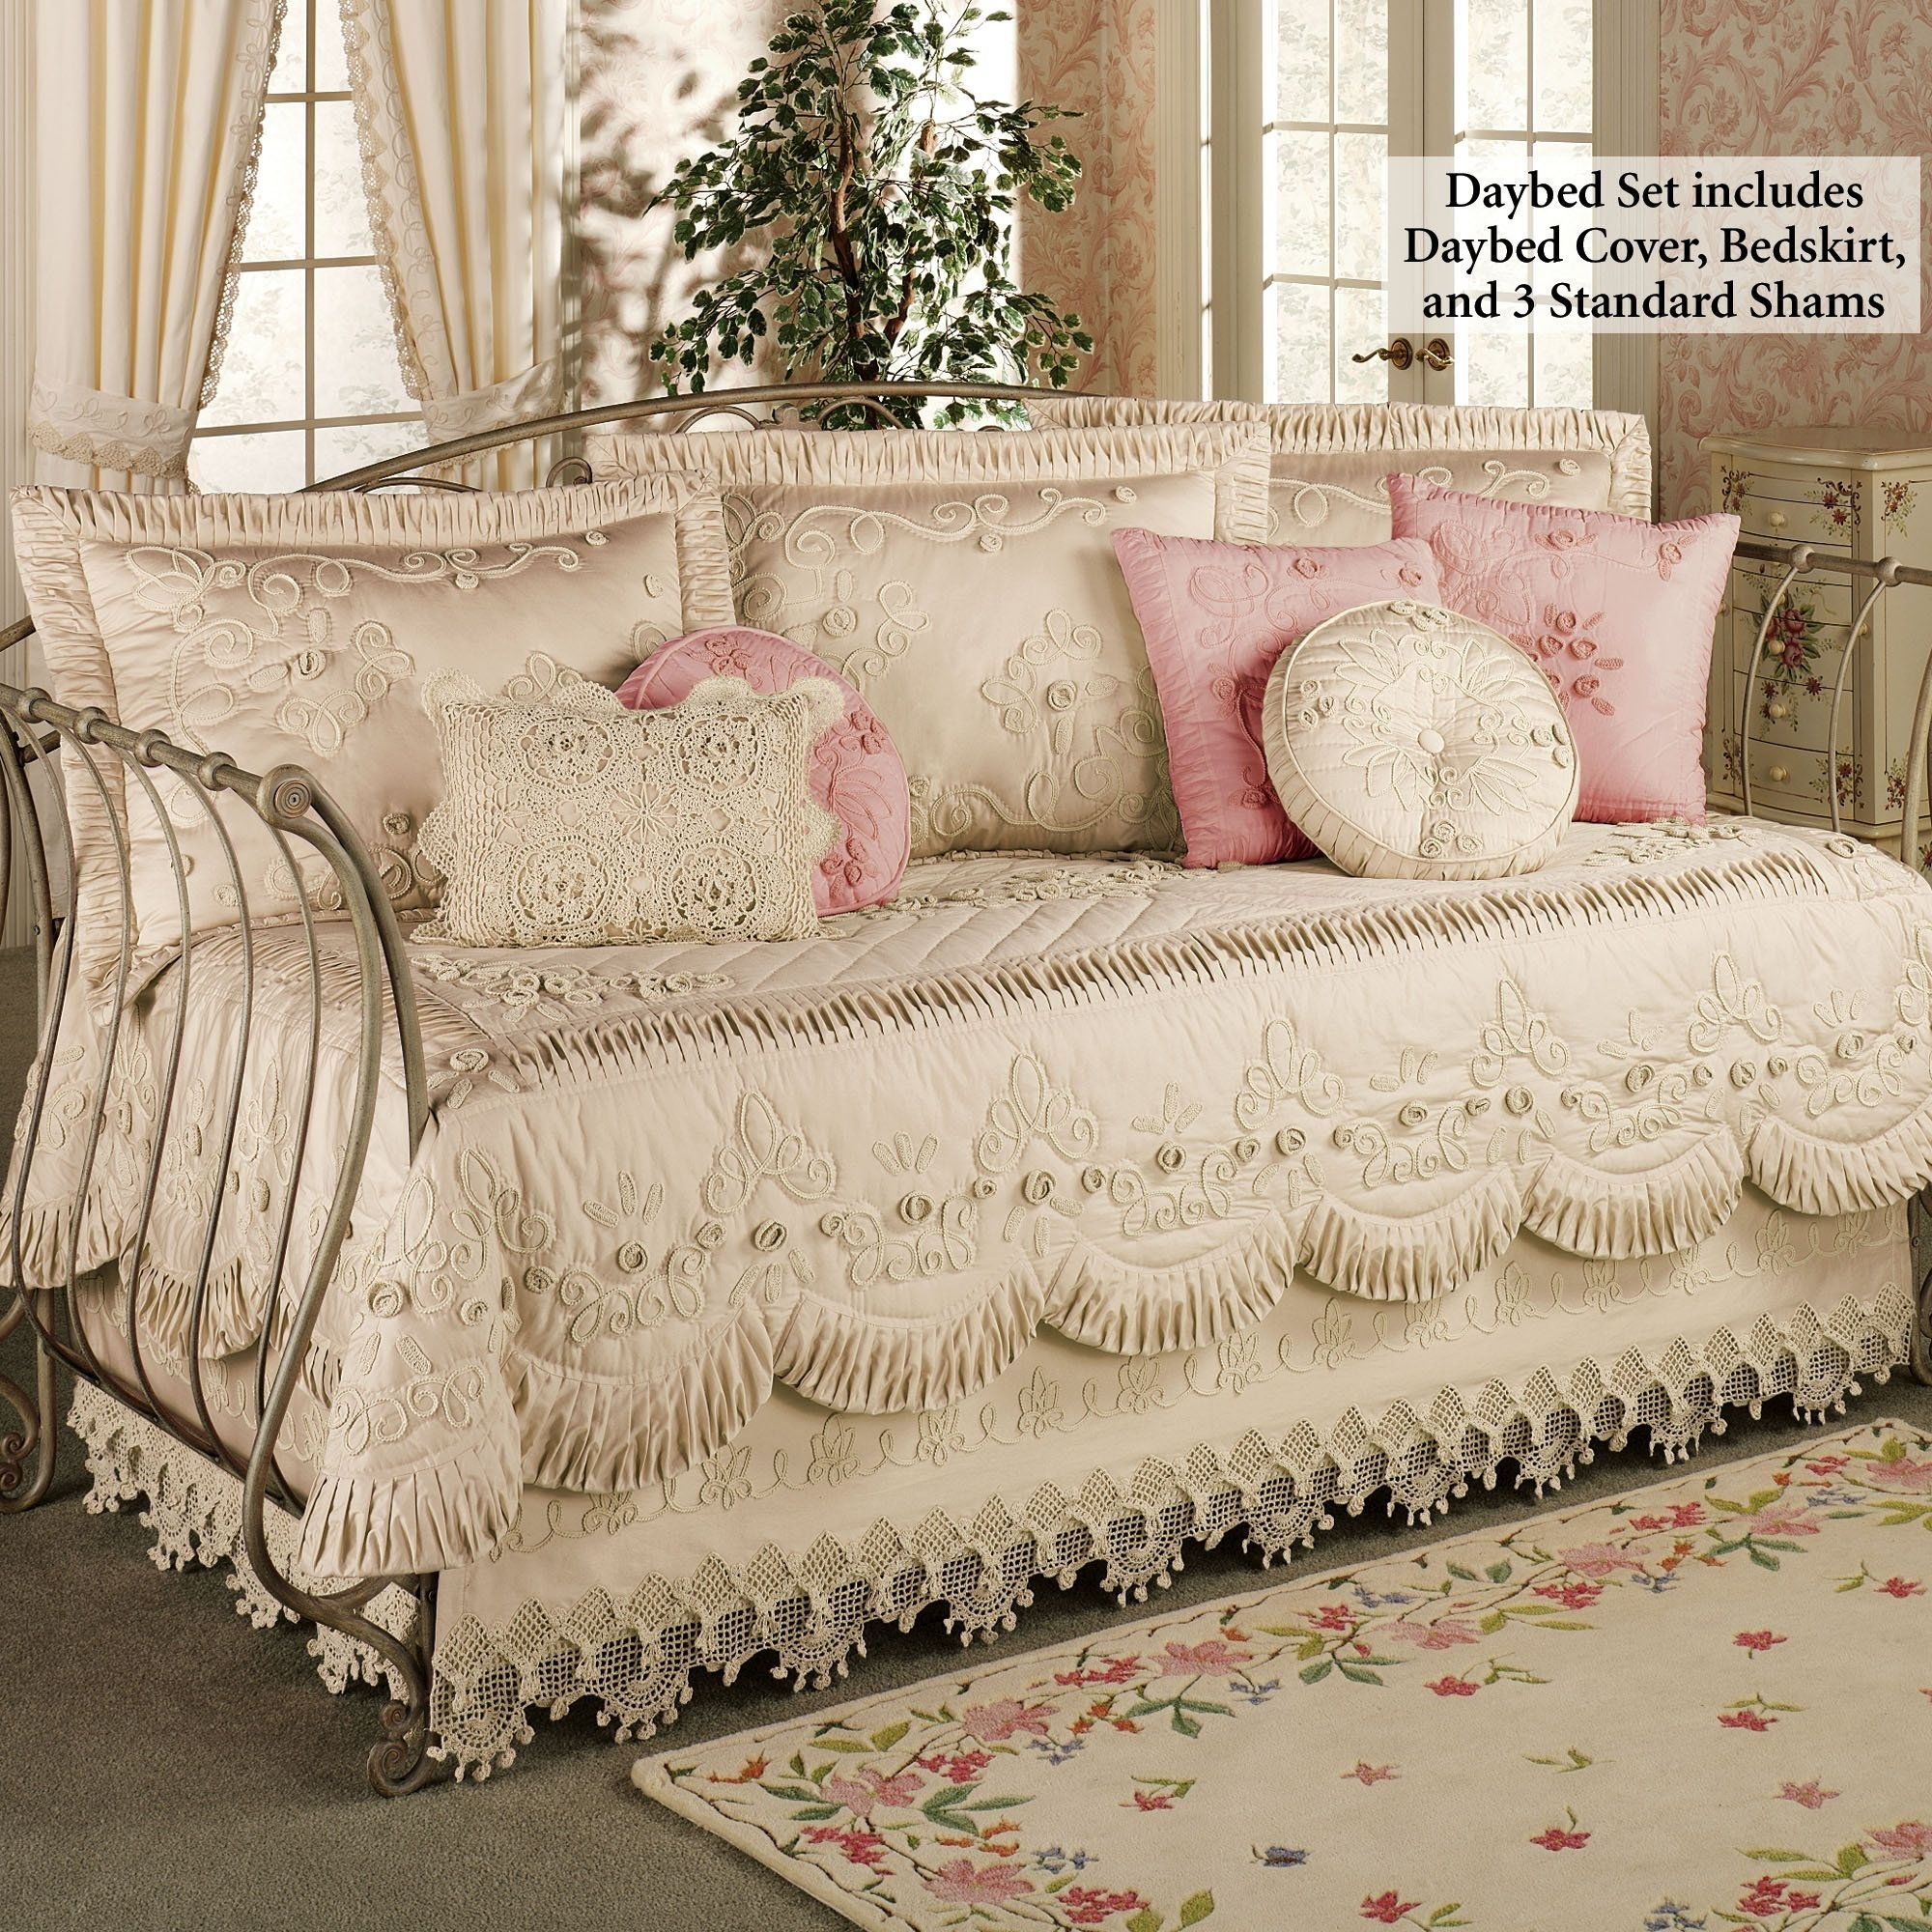 Unique Daybed Bedding Covers Ideas On Foter